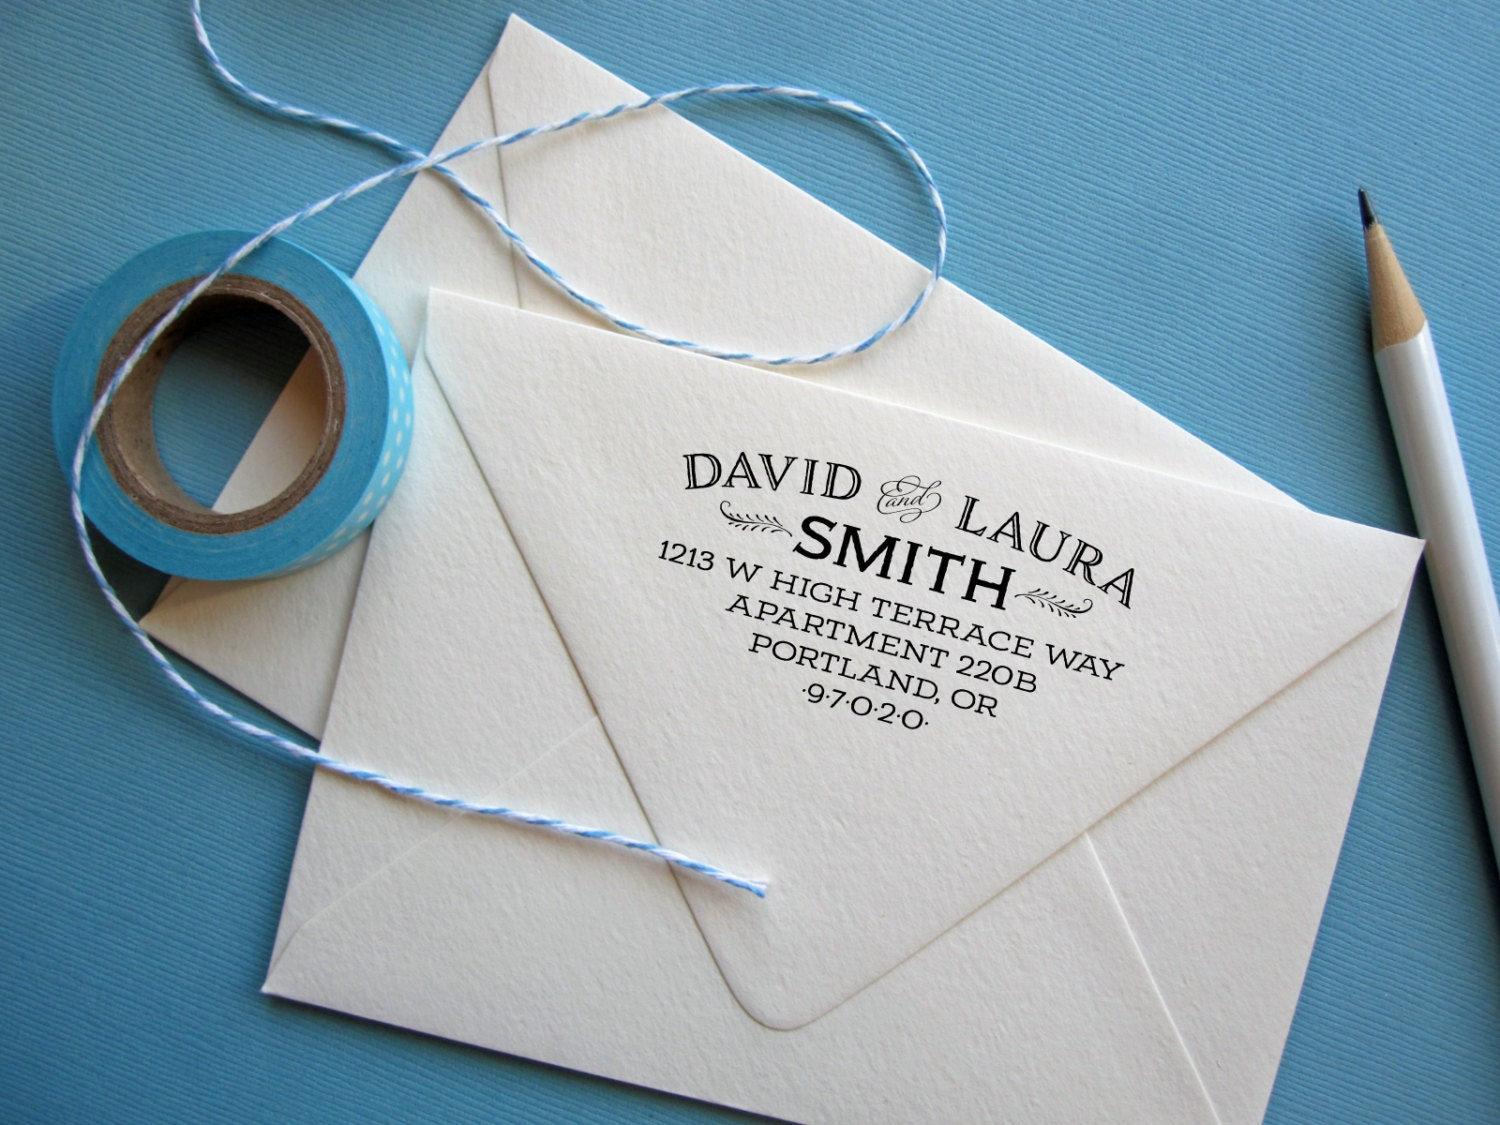 Return address stamp with long address and apartment number